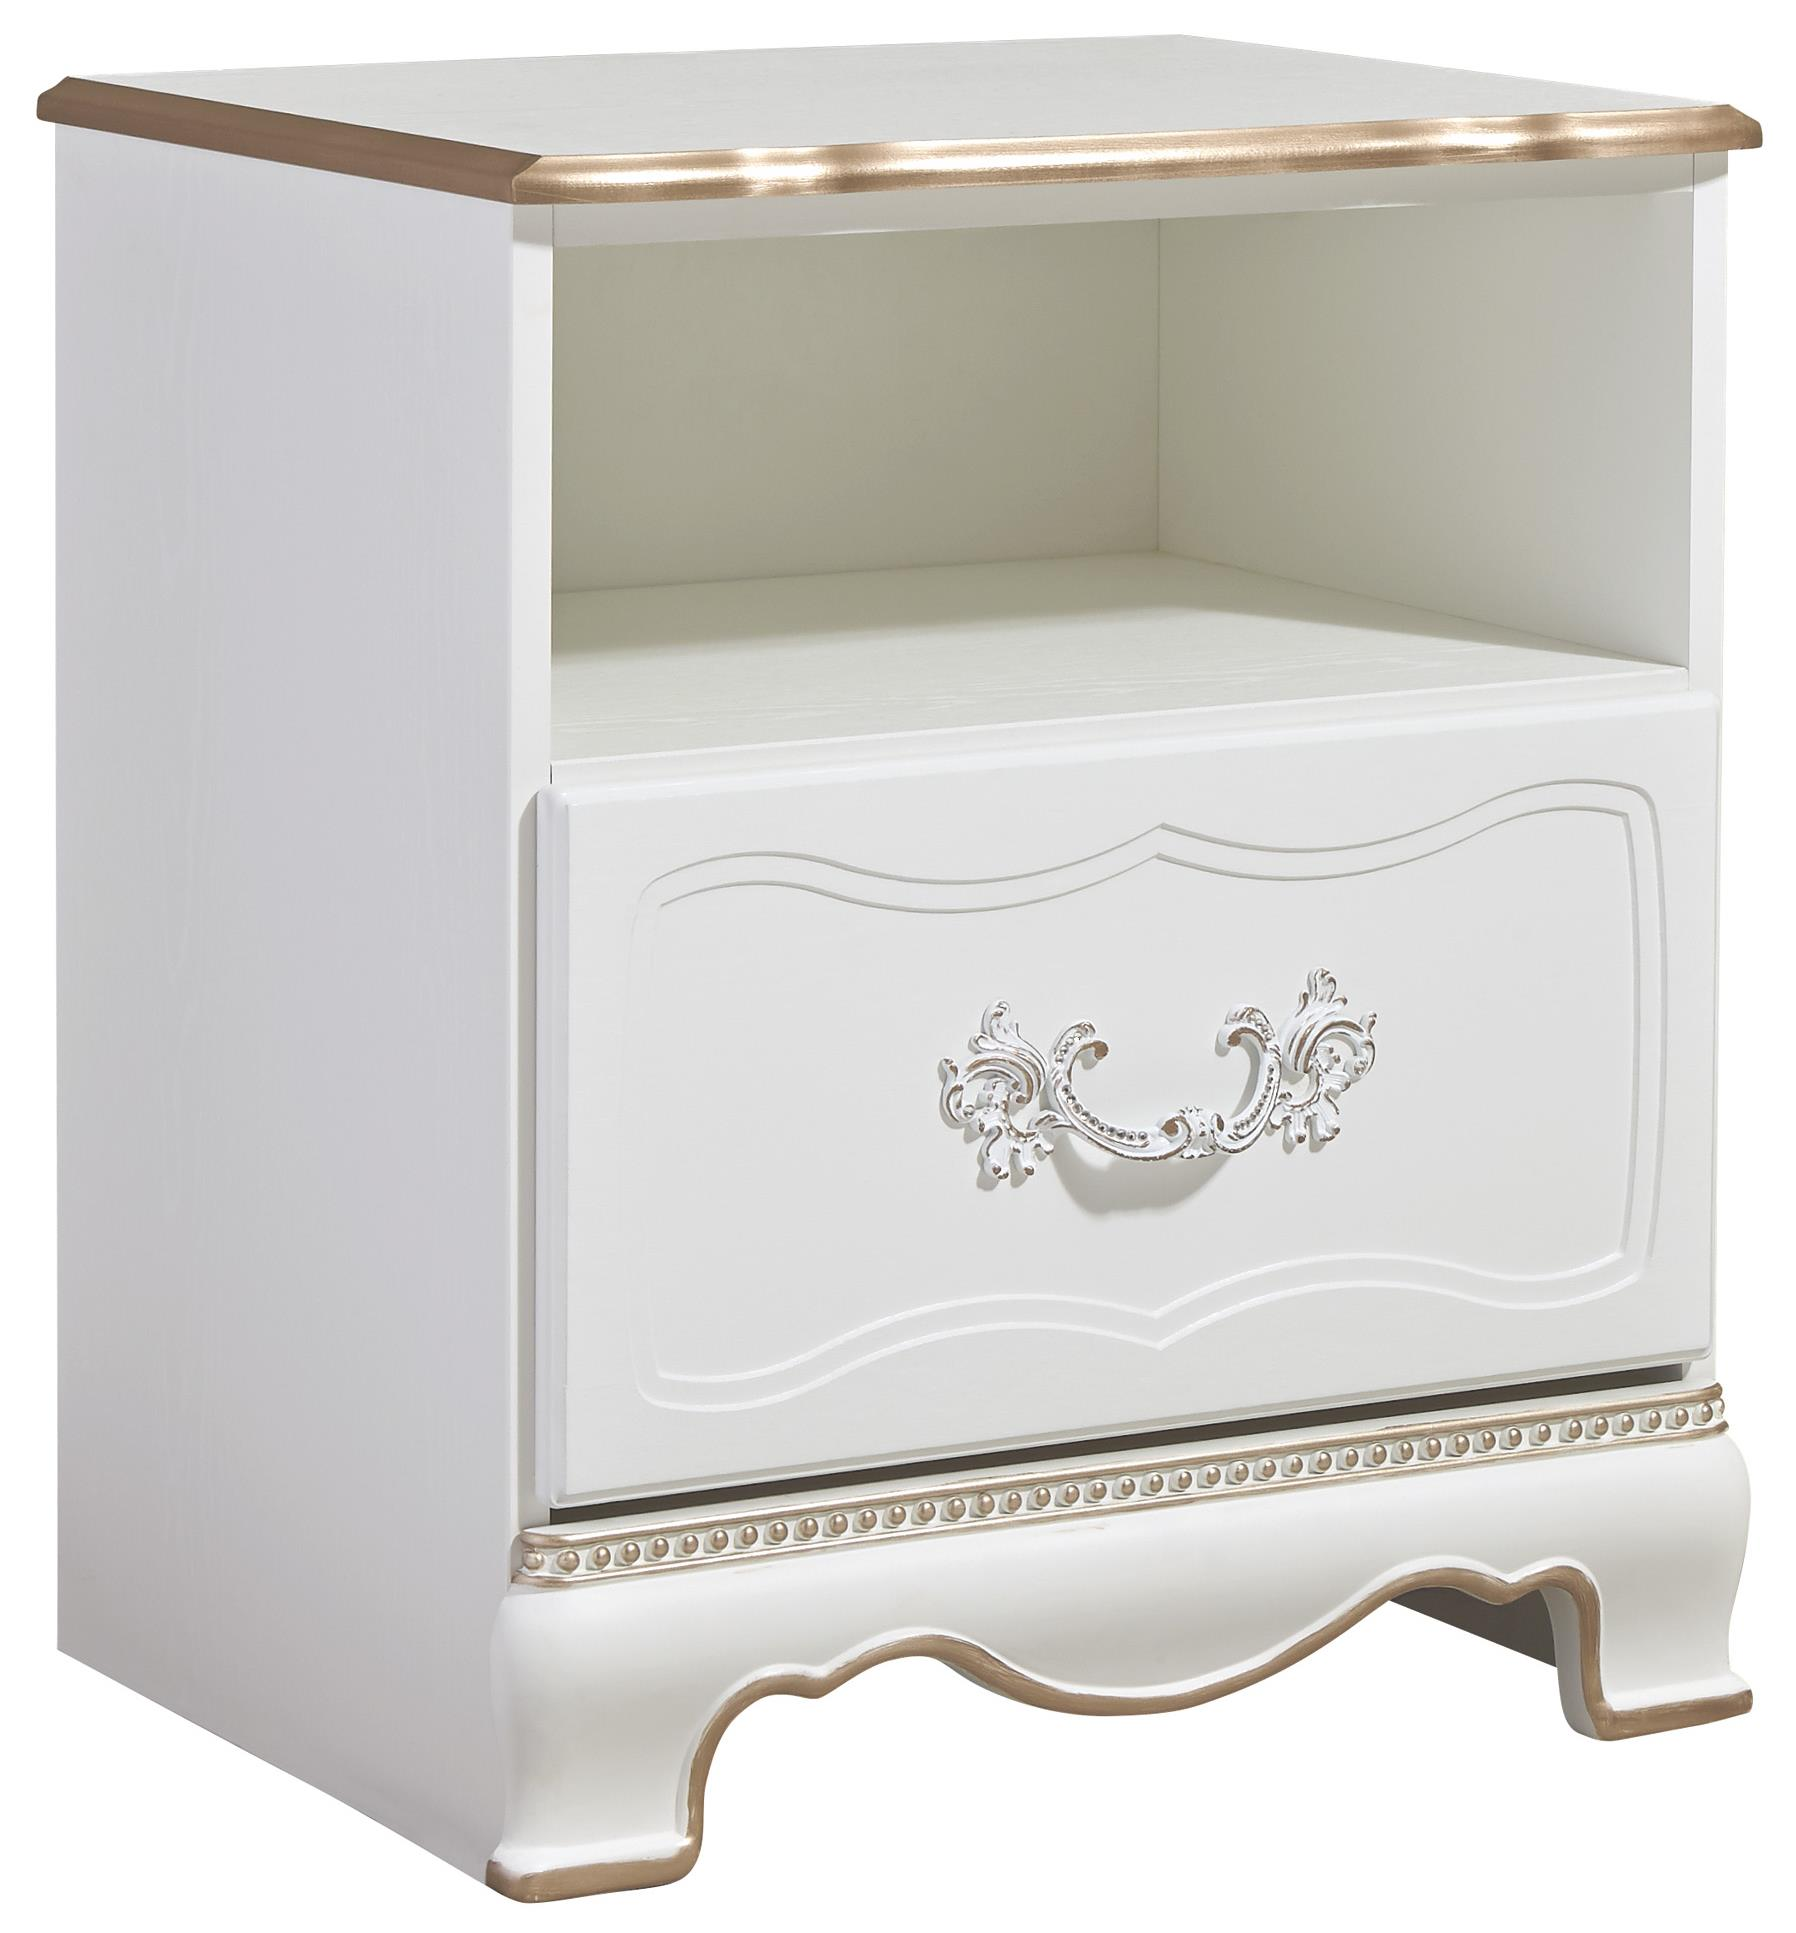 Signature Design by Ashley Korabella One Drawer Night Stand - Item Number: B355-91